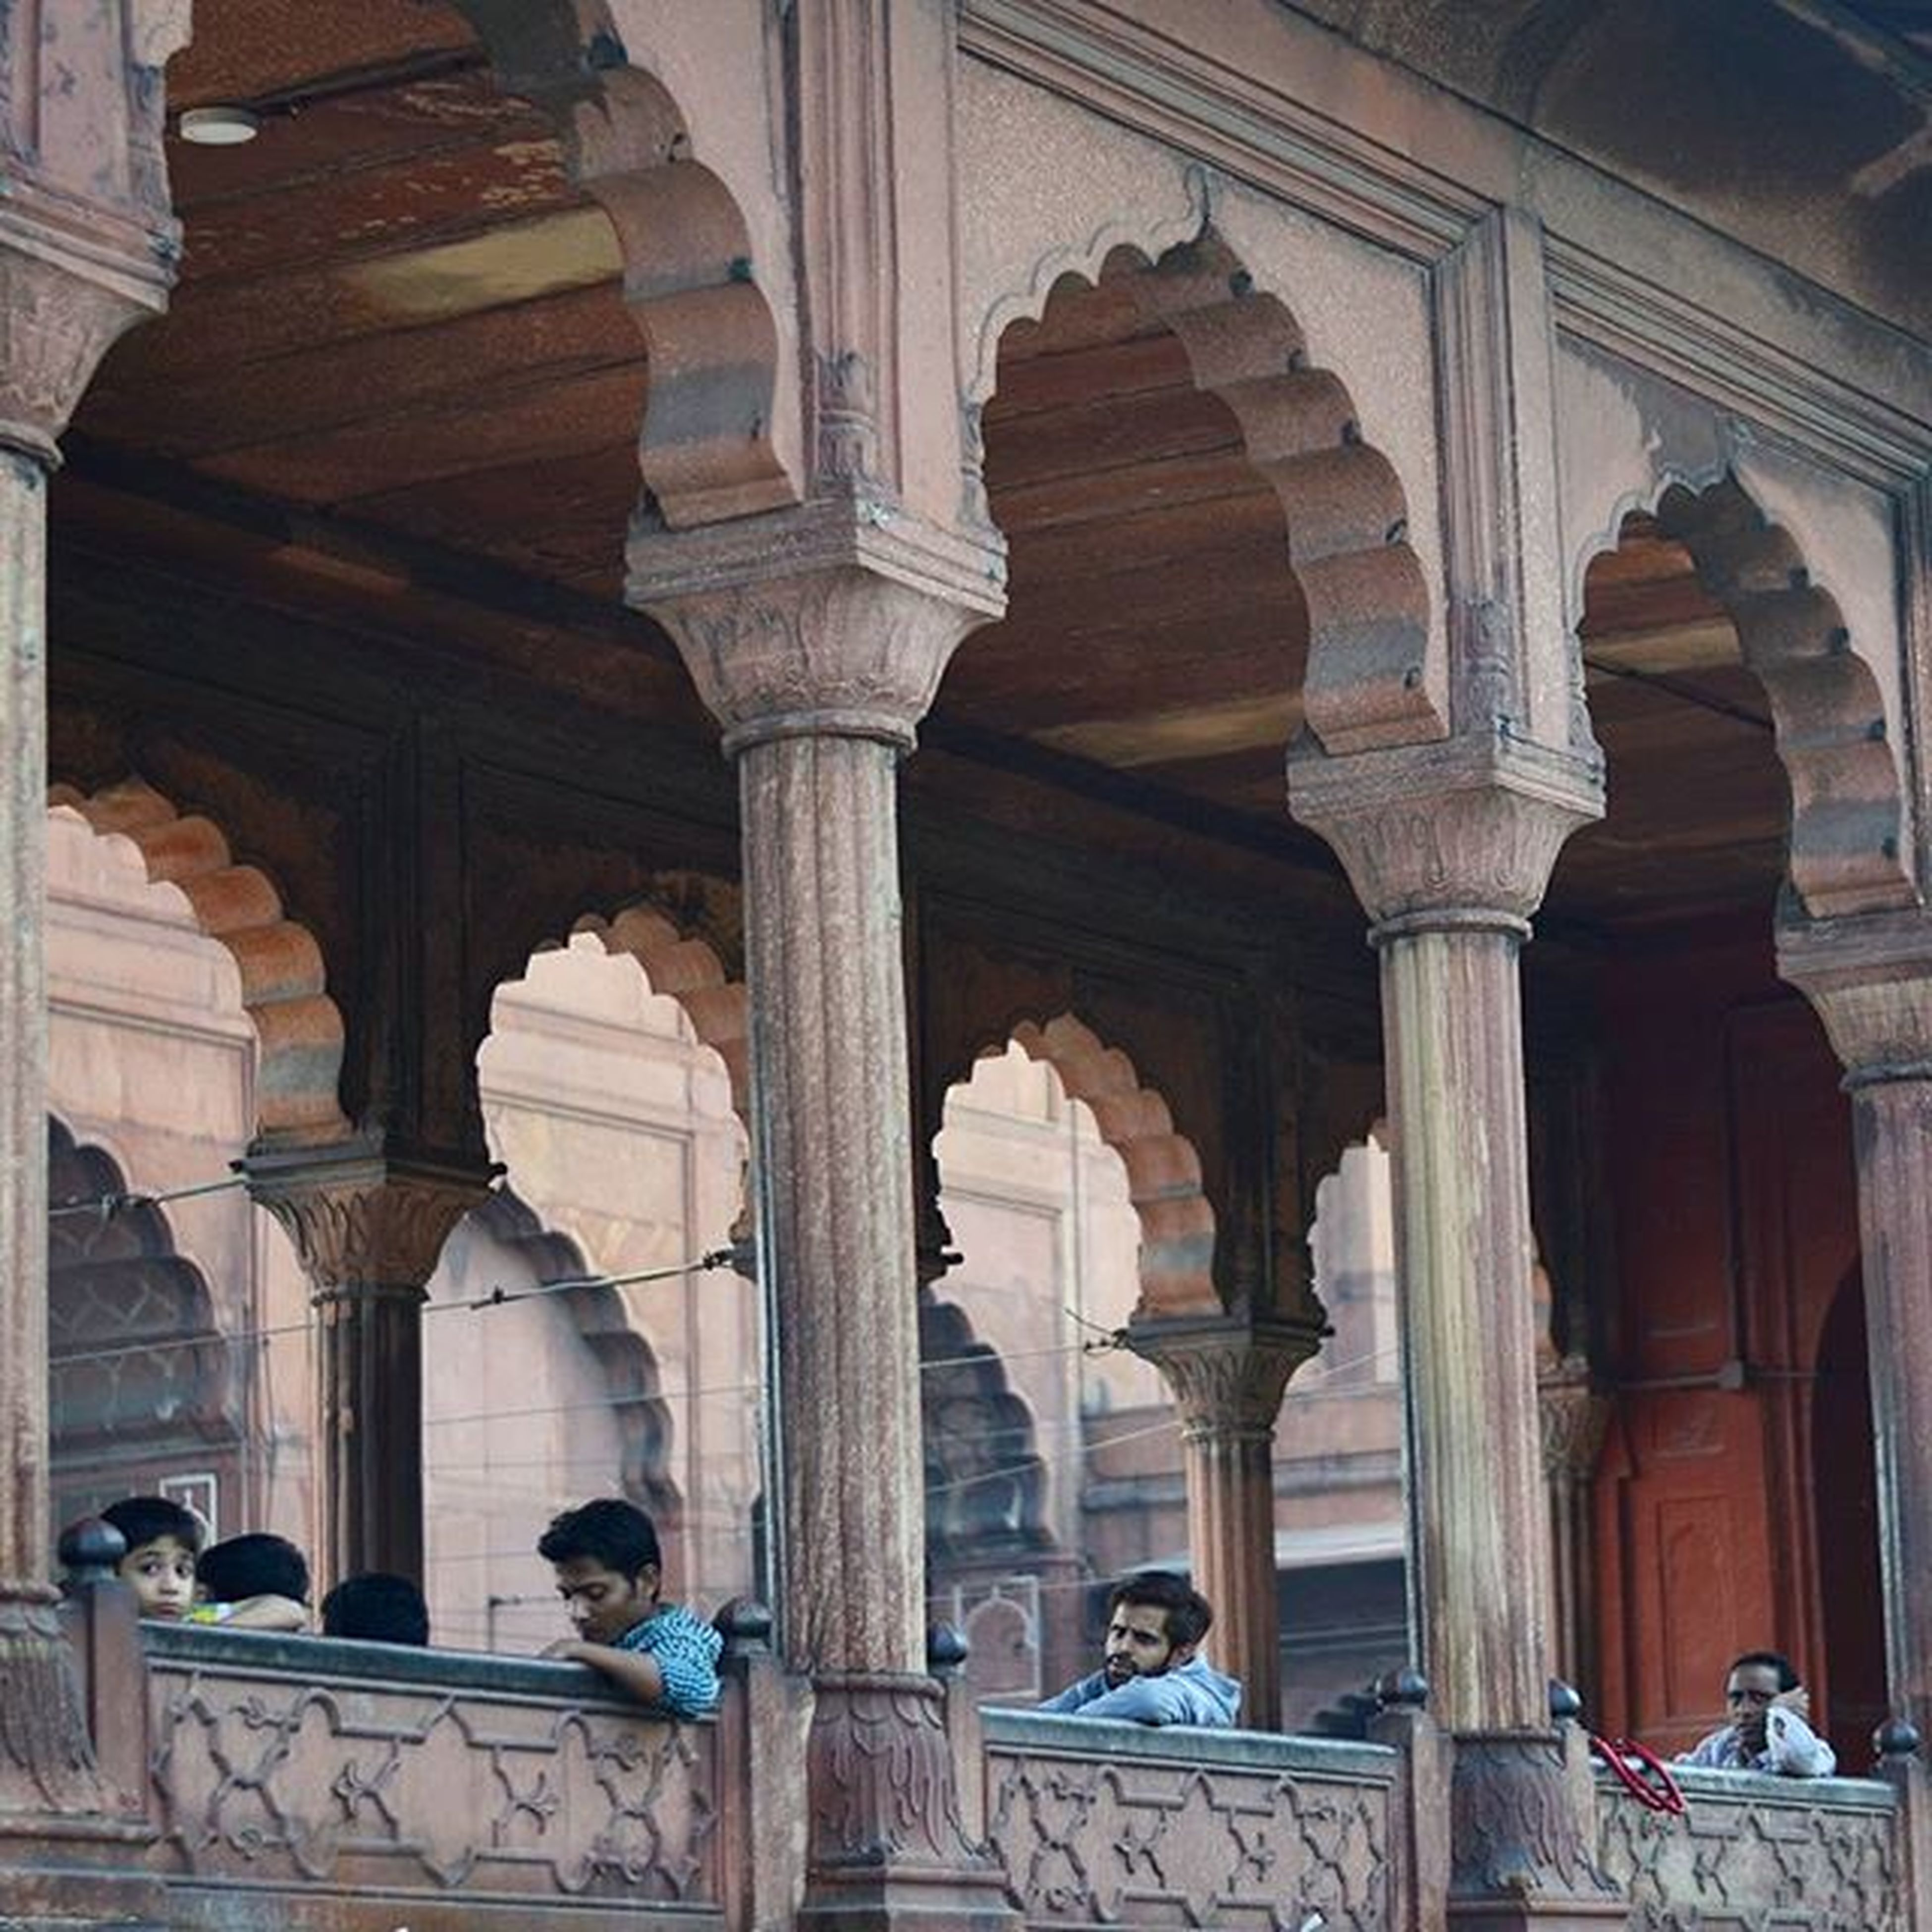 indoors, architecture, built structure, architectural column, arch, men, person, column, chair, ceiling, building exterior, window, sitting, in a row, lifestyles, day, history, interior, travel